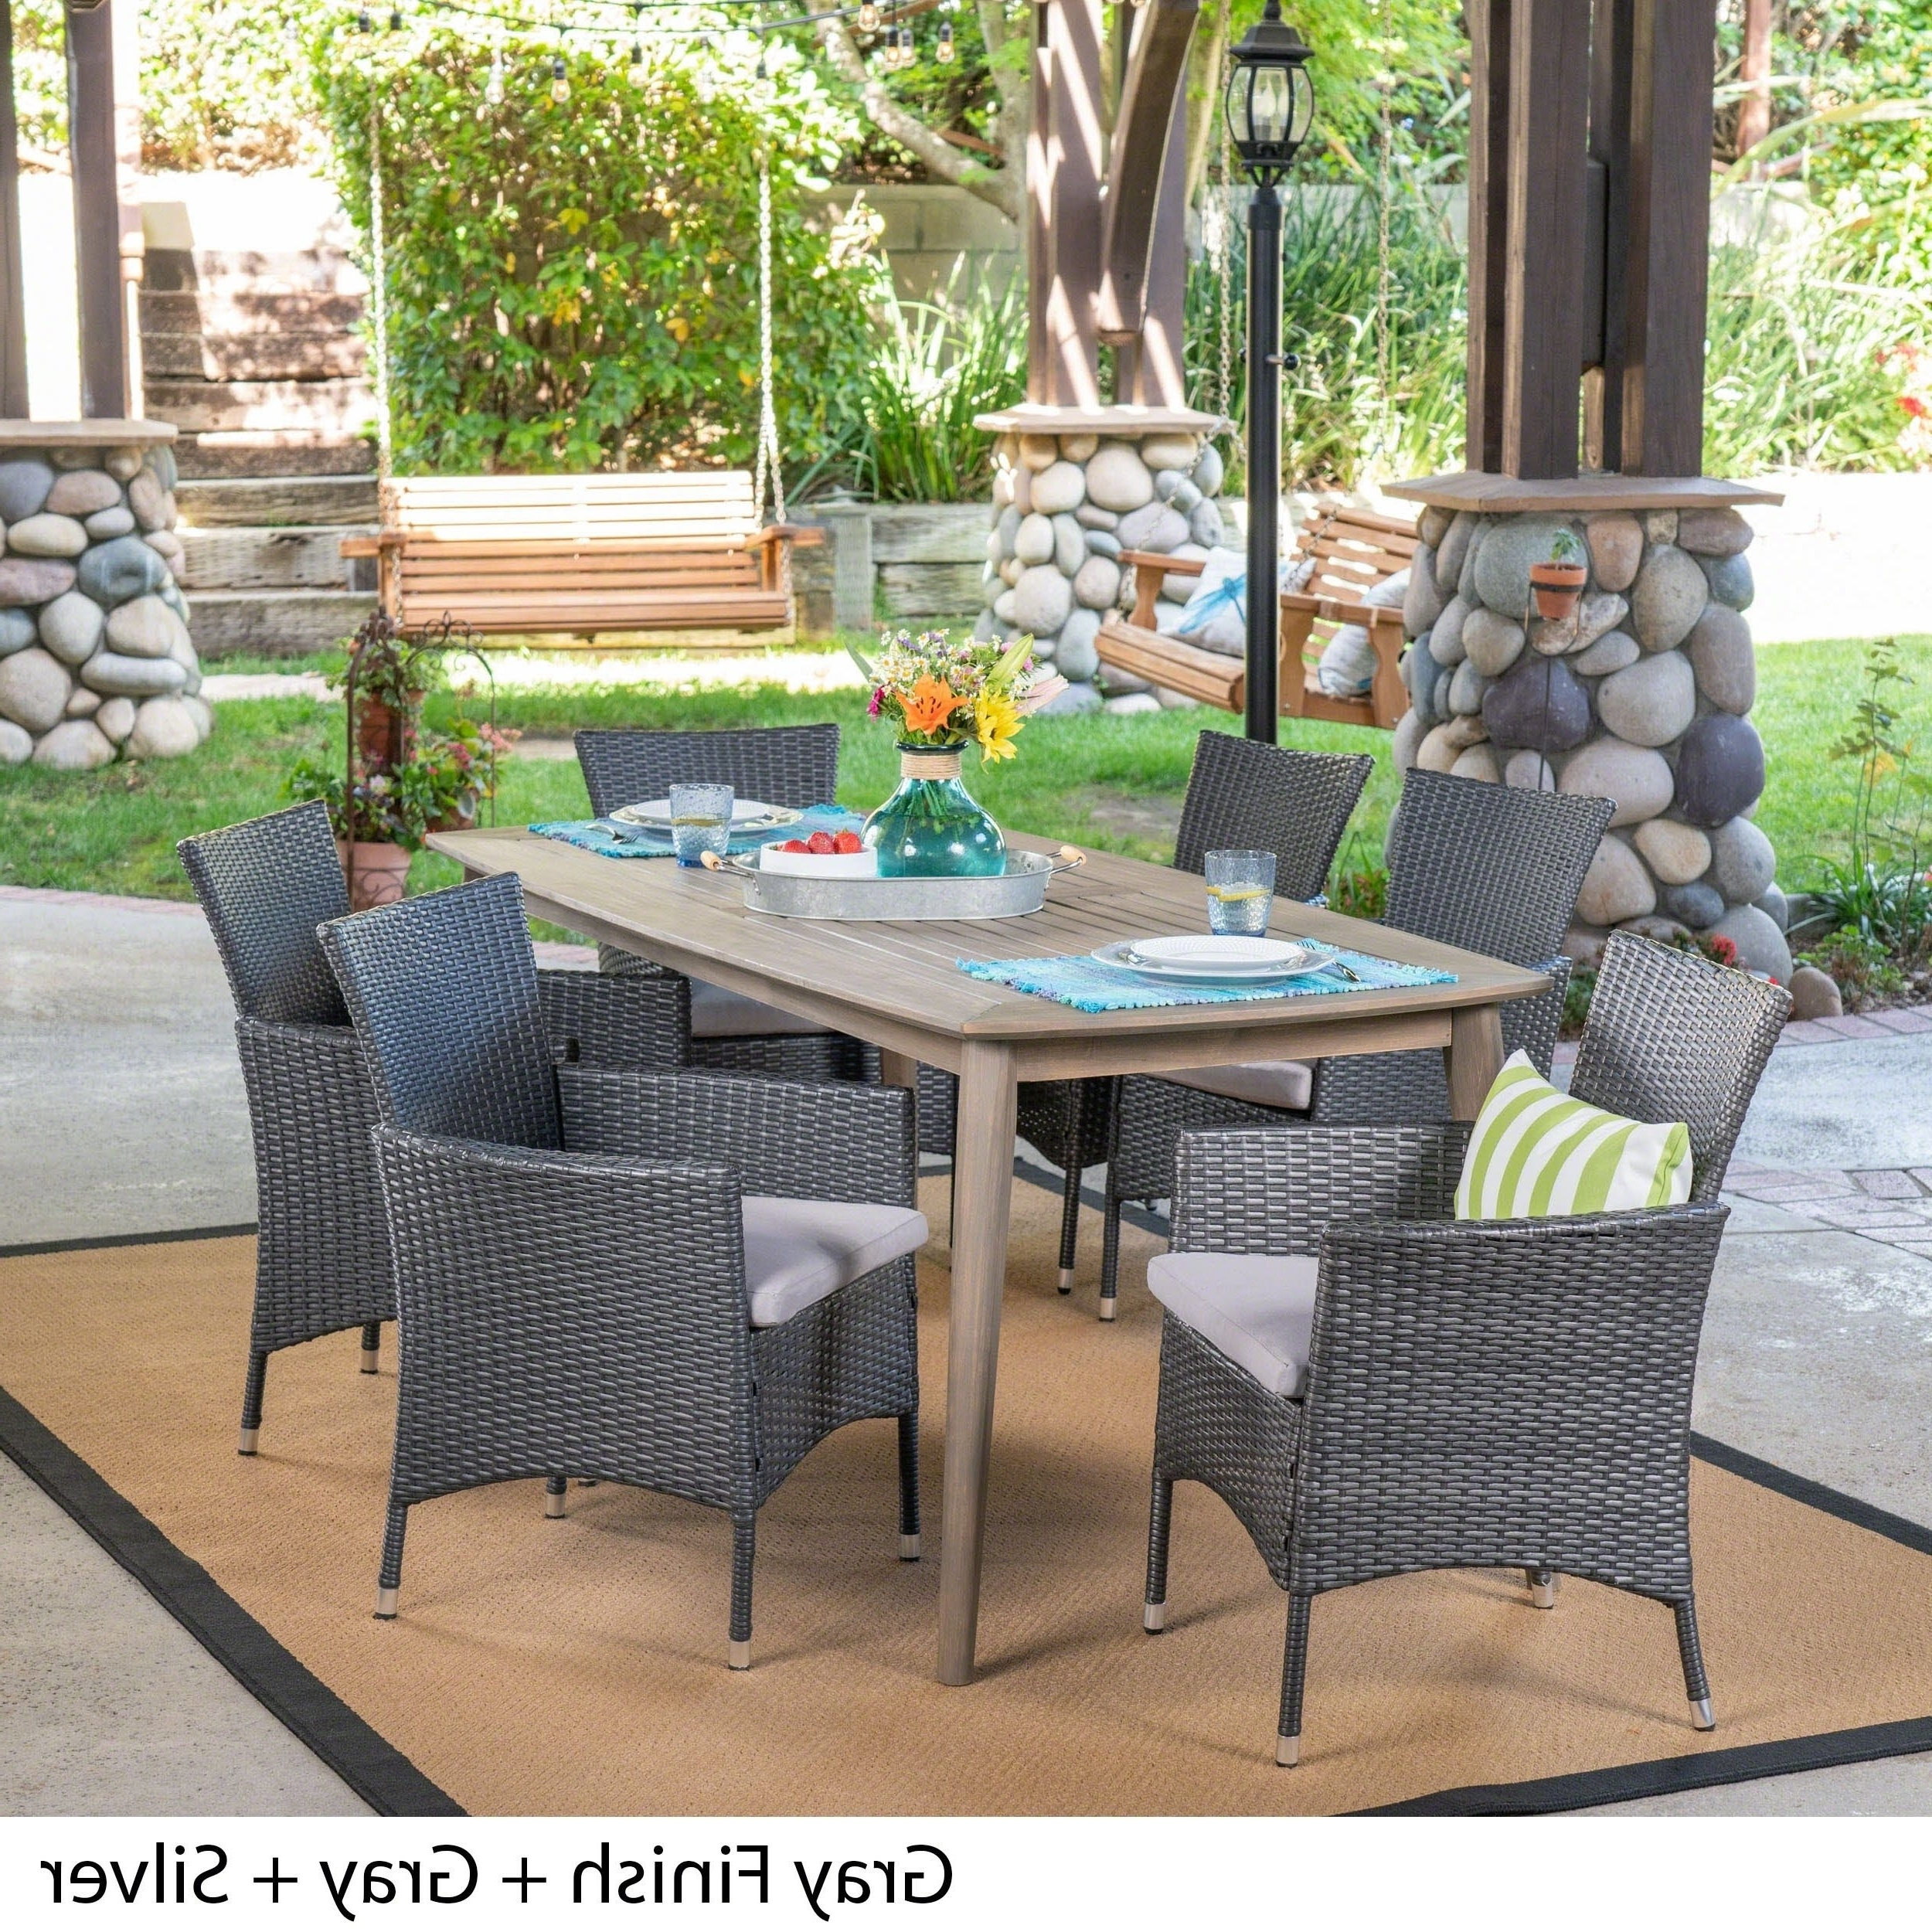 Jaxon Grey 5 Piece Round Extension Dining Sets With Upholstered Chairs Inside Trendy Shop Jaxon Outdoor 7 Piece Multibrown Pe Wicker Dining Set With (Gallery 22 of 25)